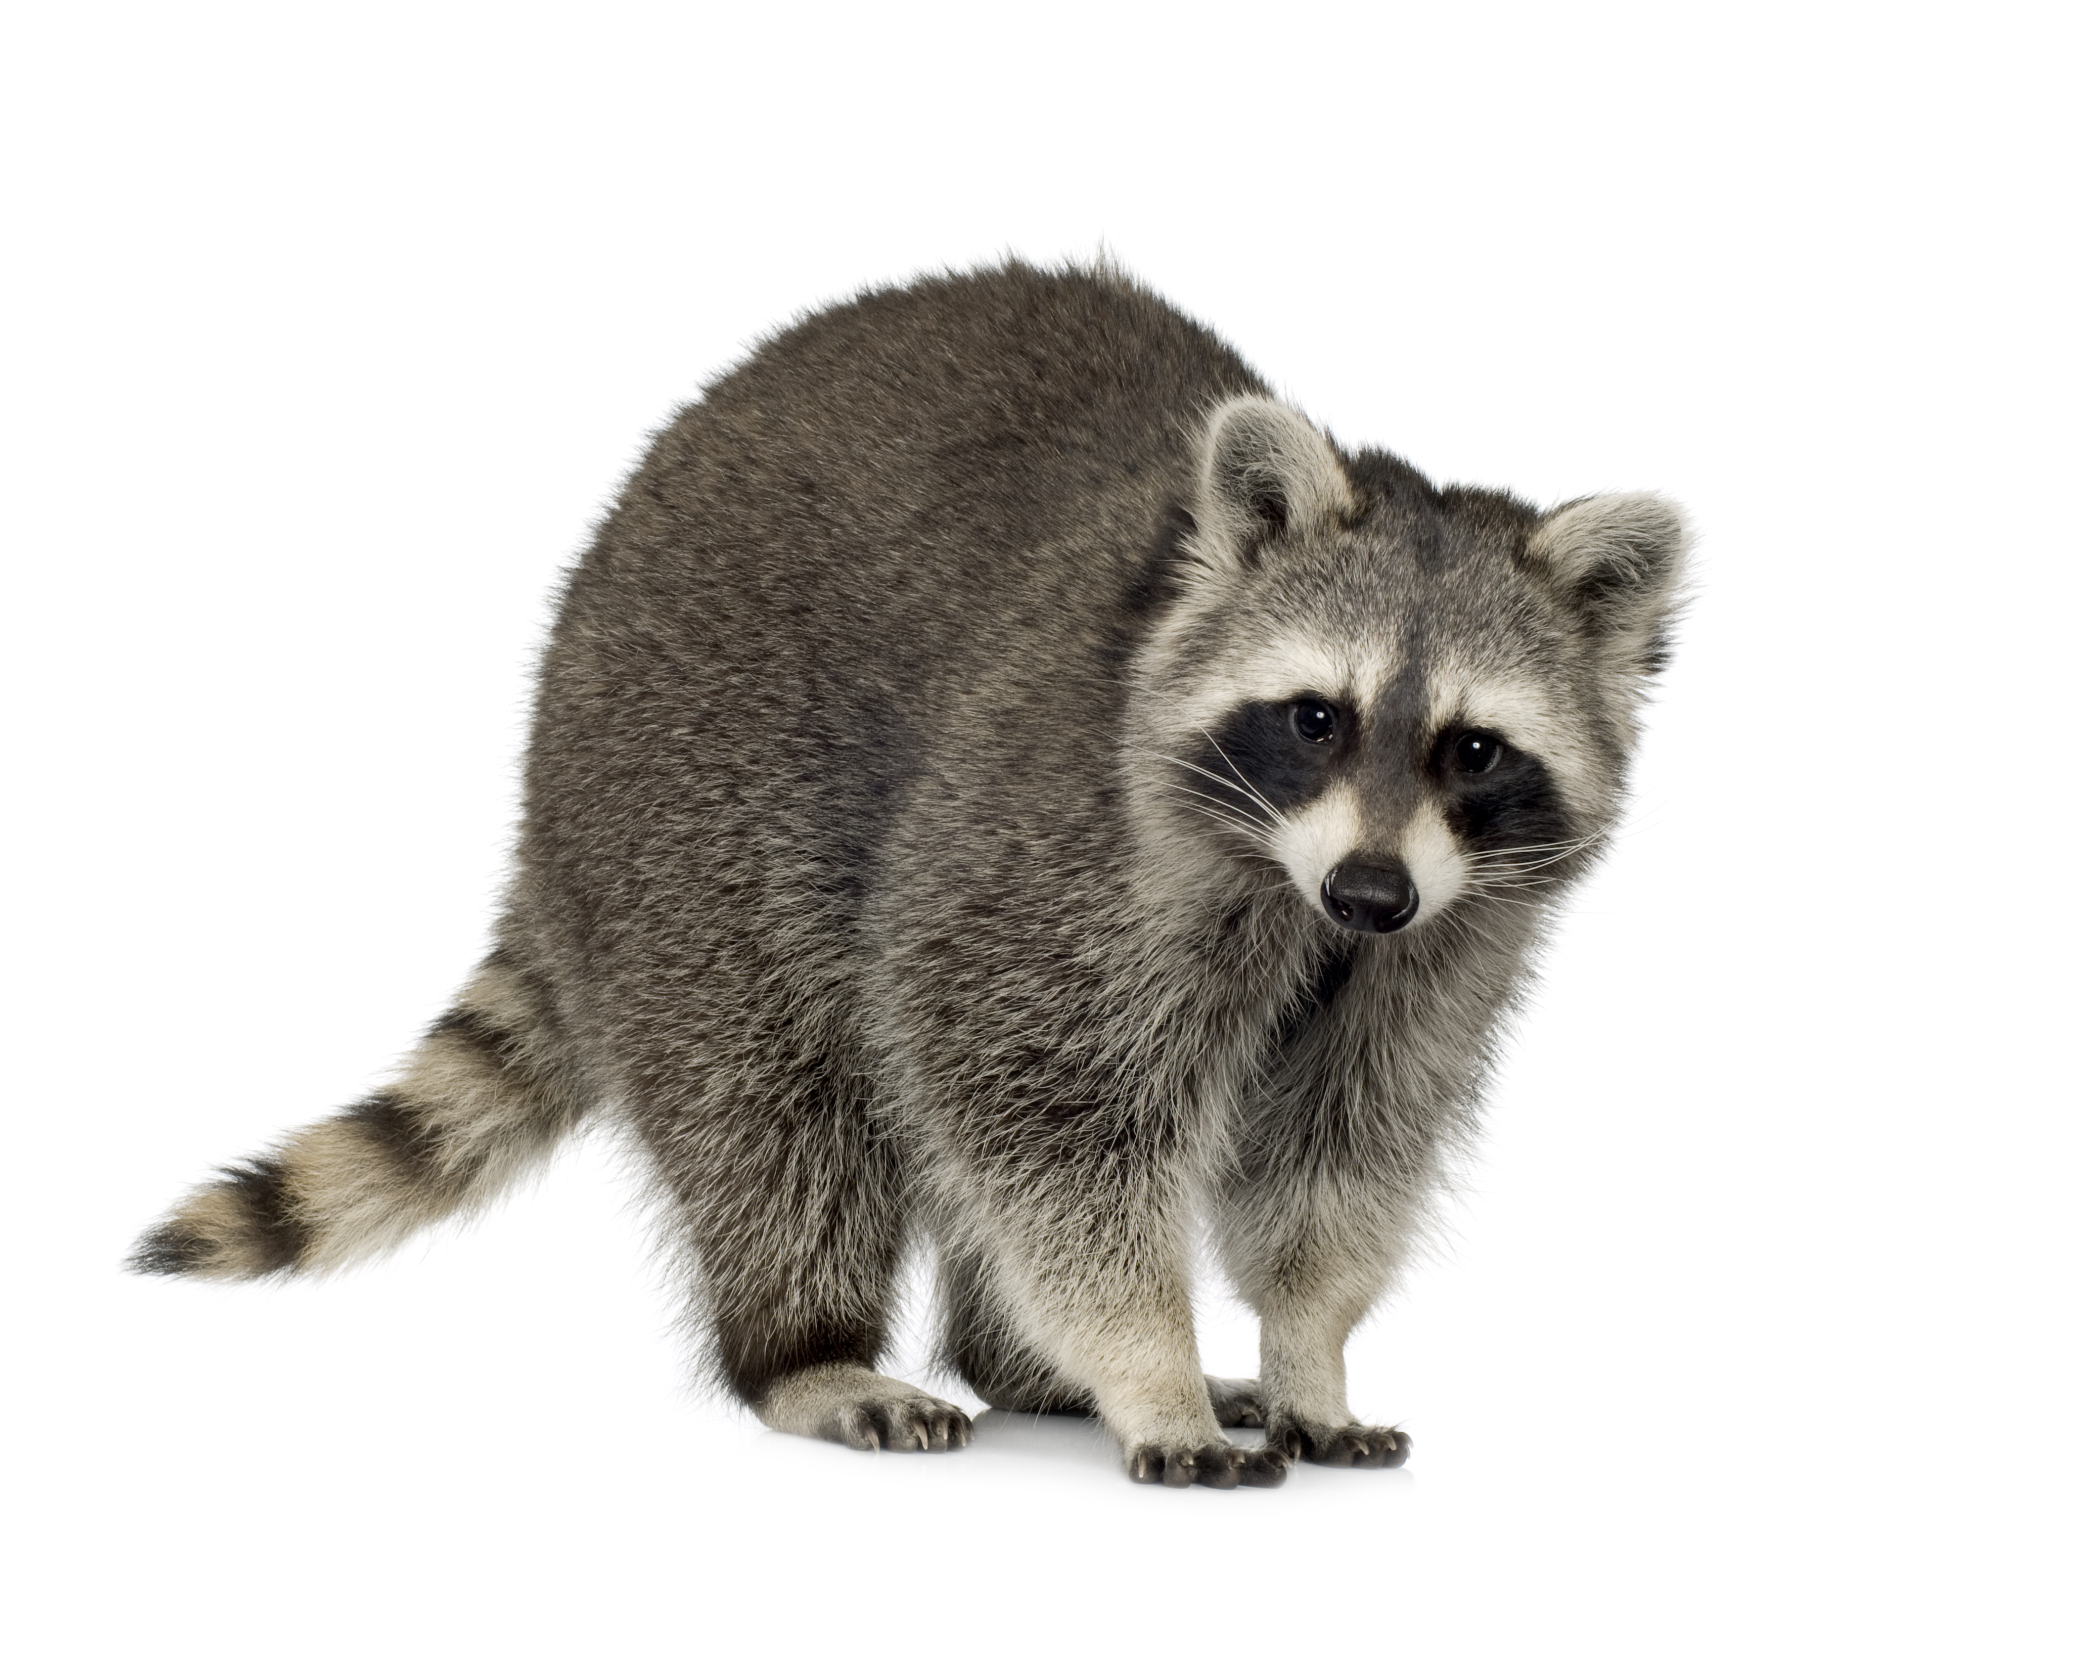 Raccoon PNG - 18244